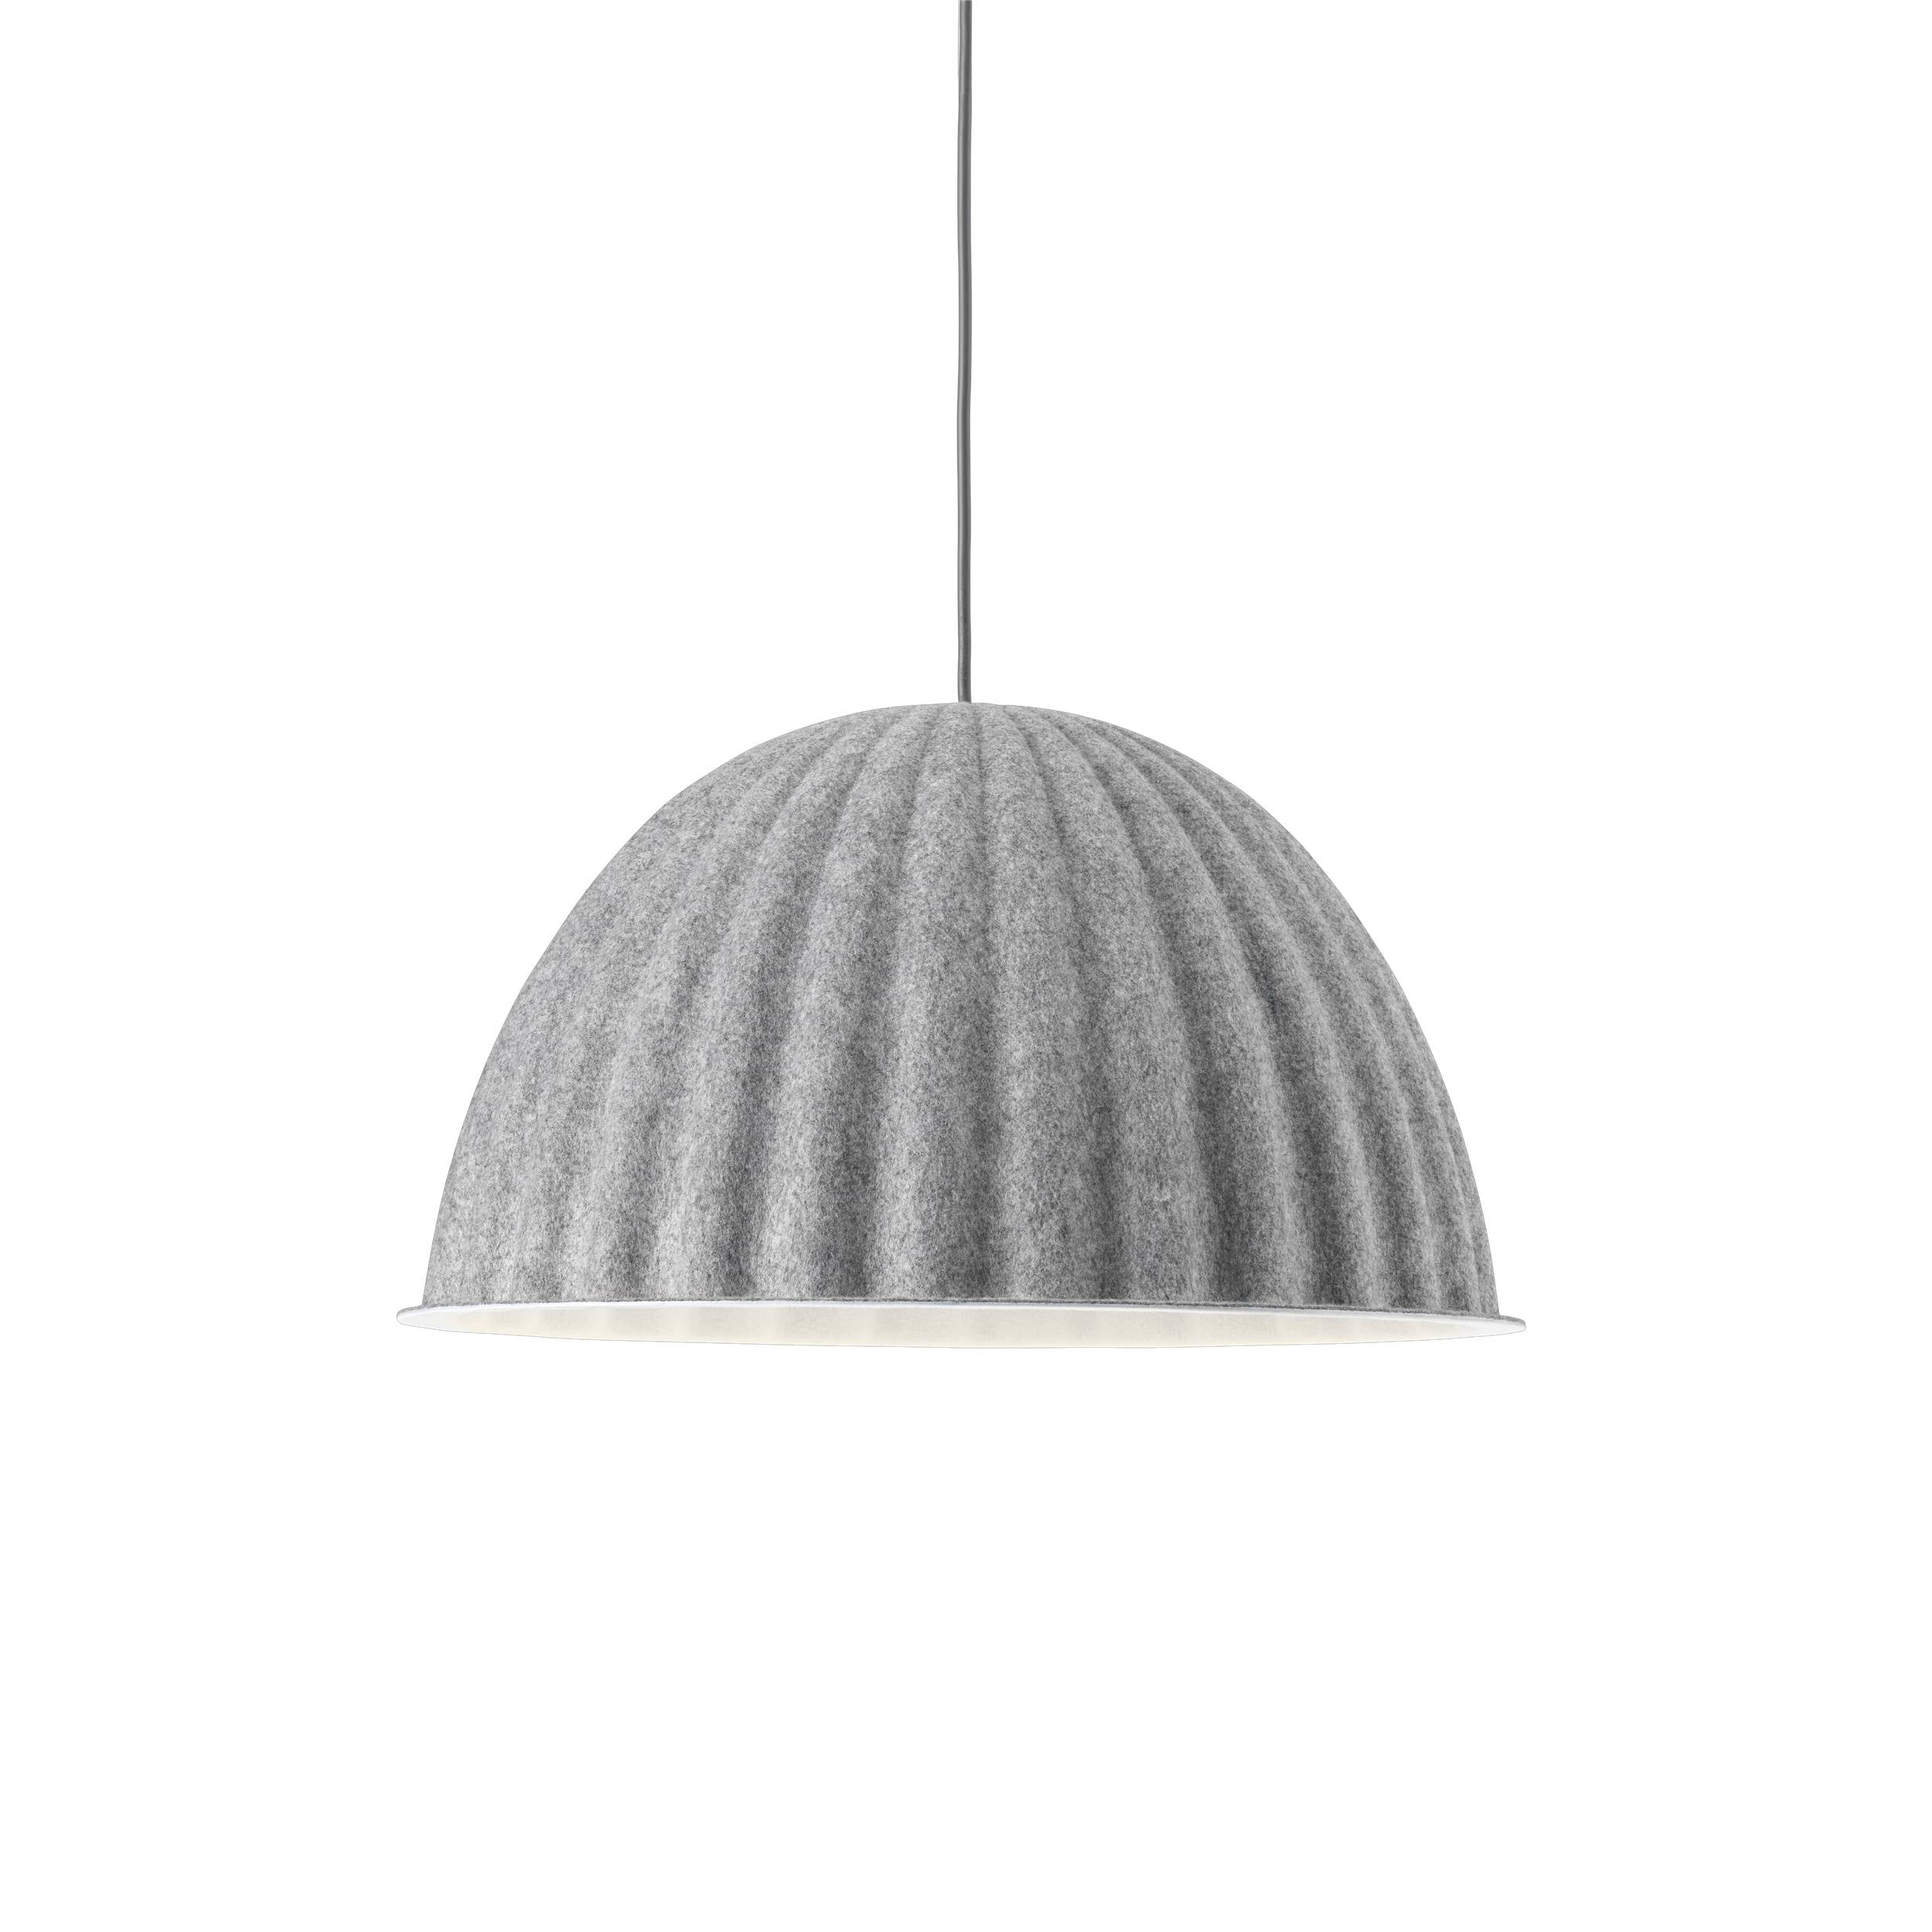 Under the Bell Light: Small - Grey